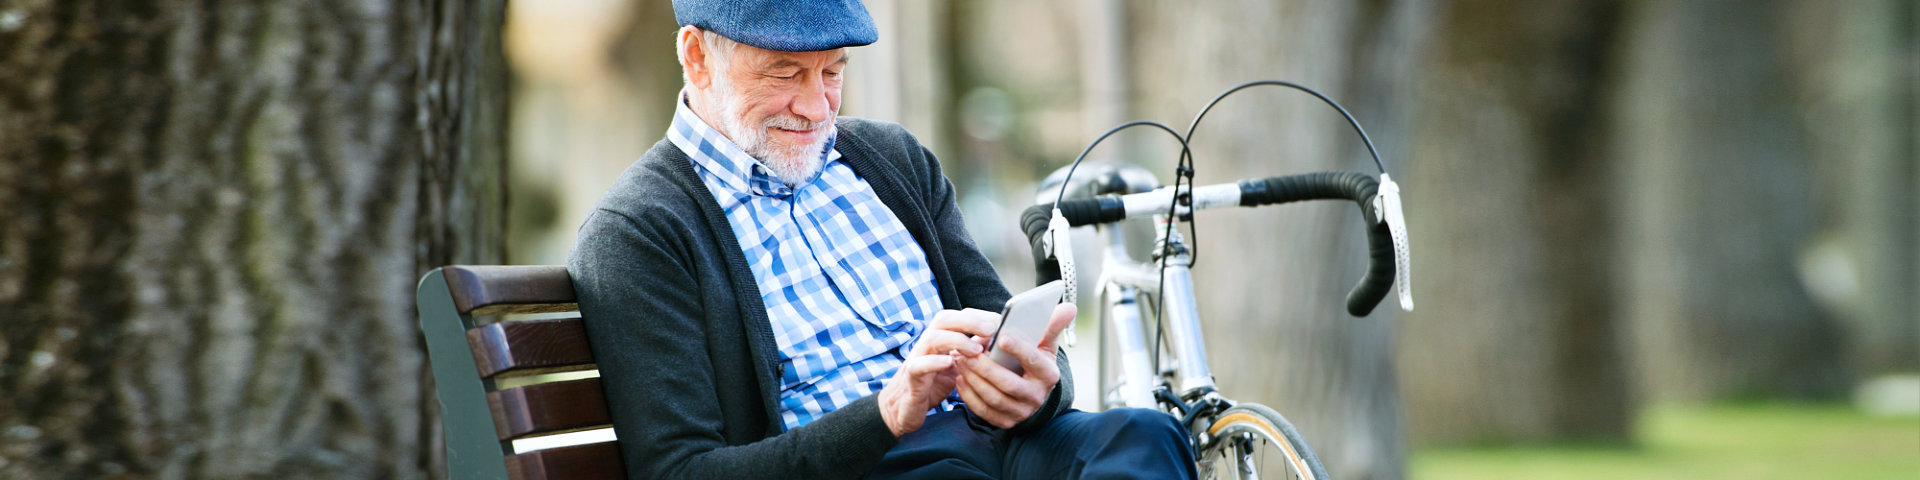 Senior man with bicycle in town, holding smart phone